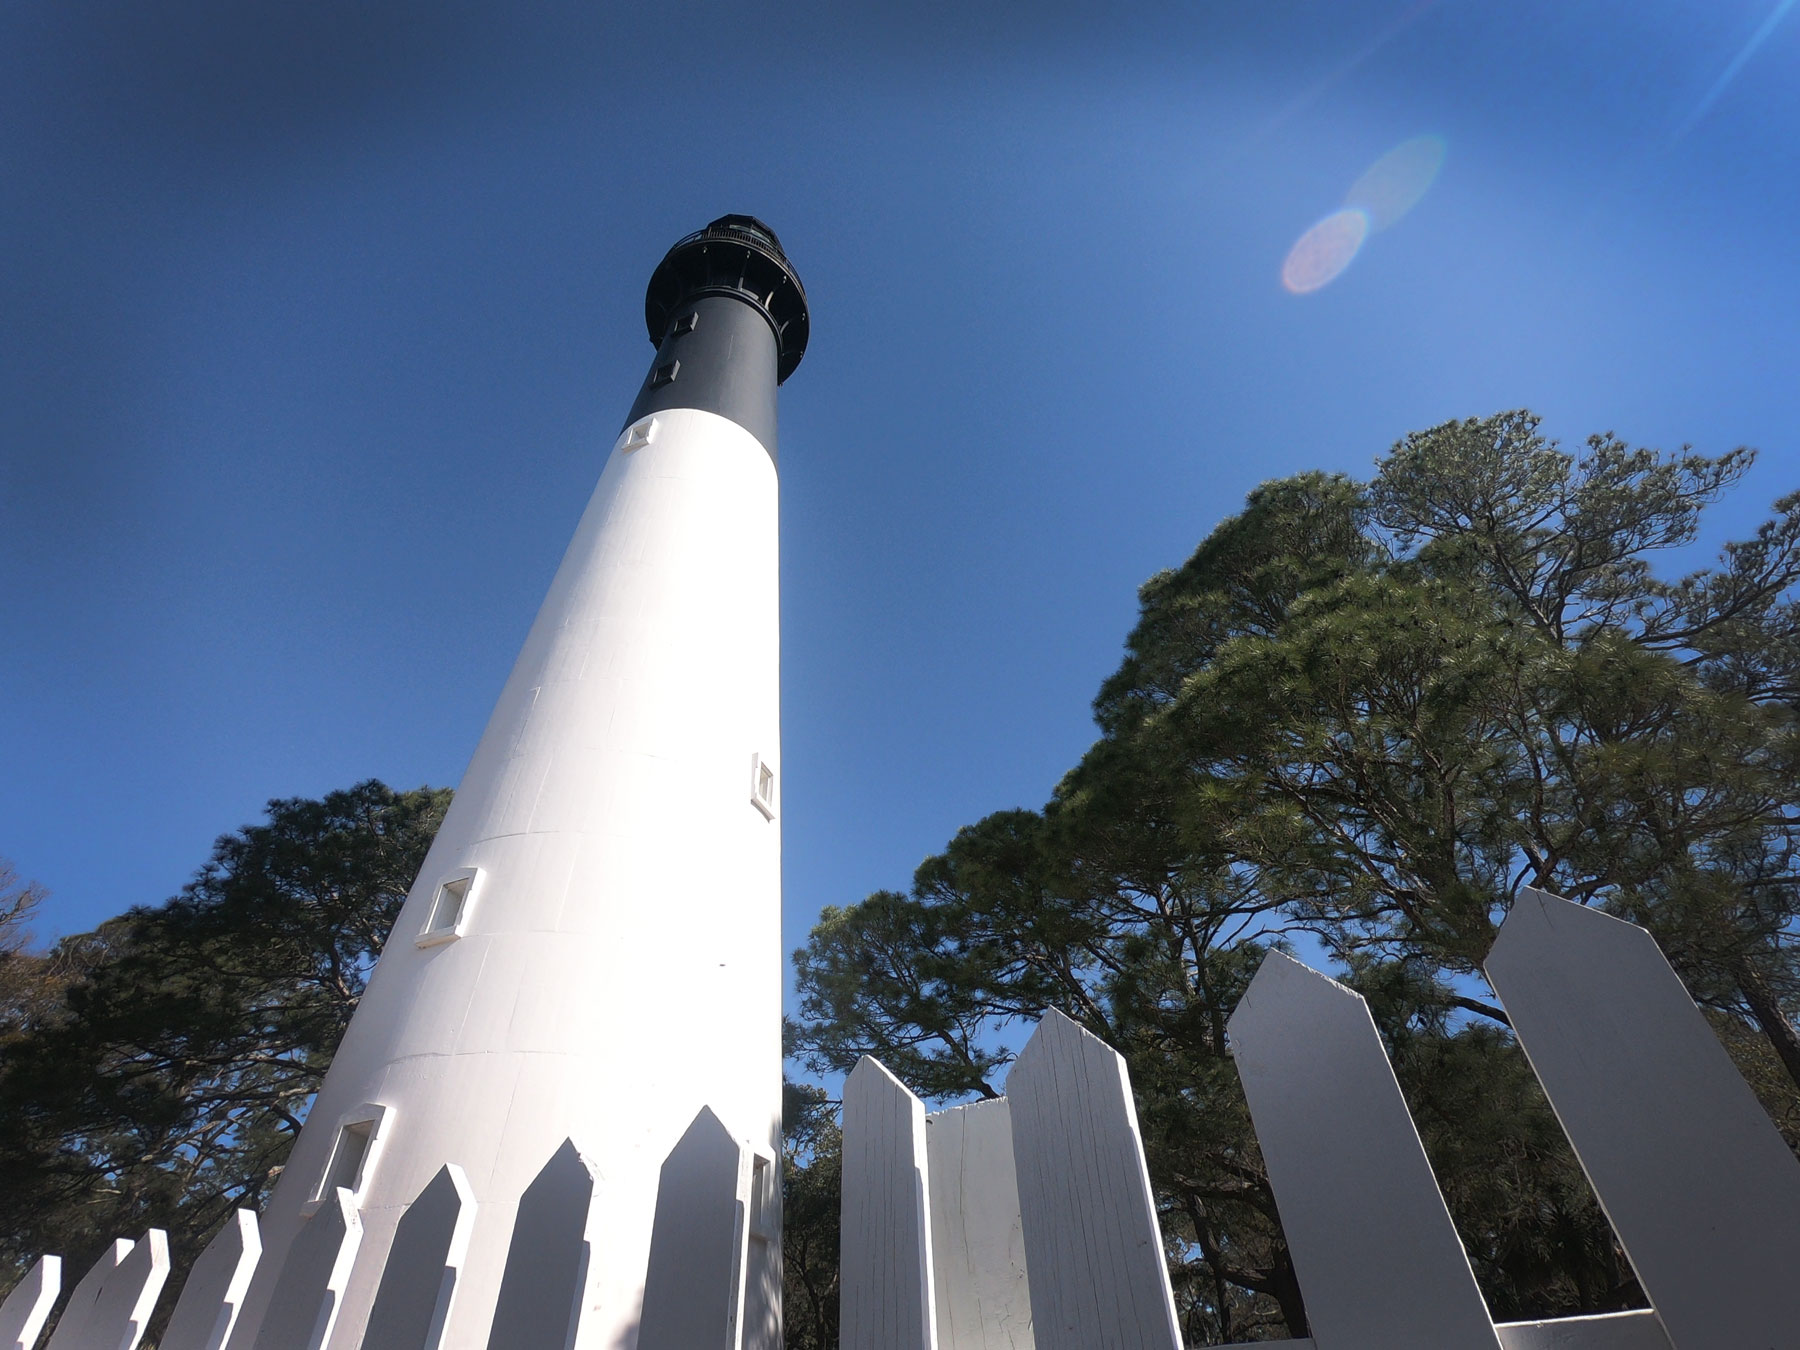 The Lighthouse at Hunting Island State Park in South Carolina